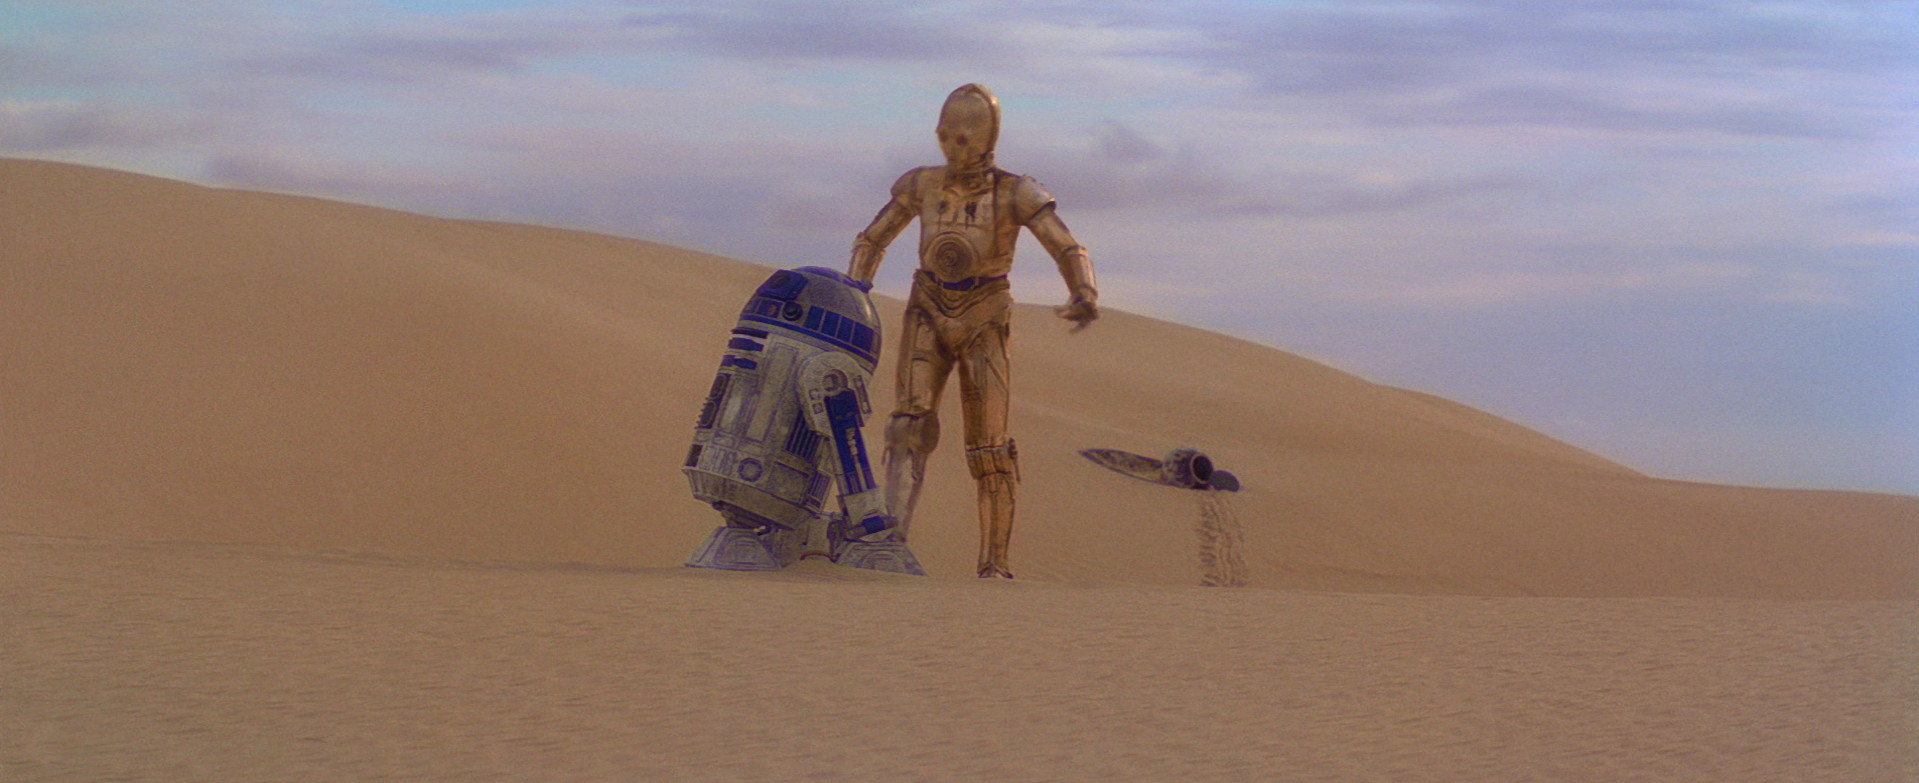 C-3PO and R2-D2 argue in A New Hope